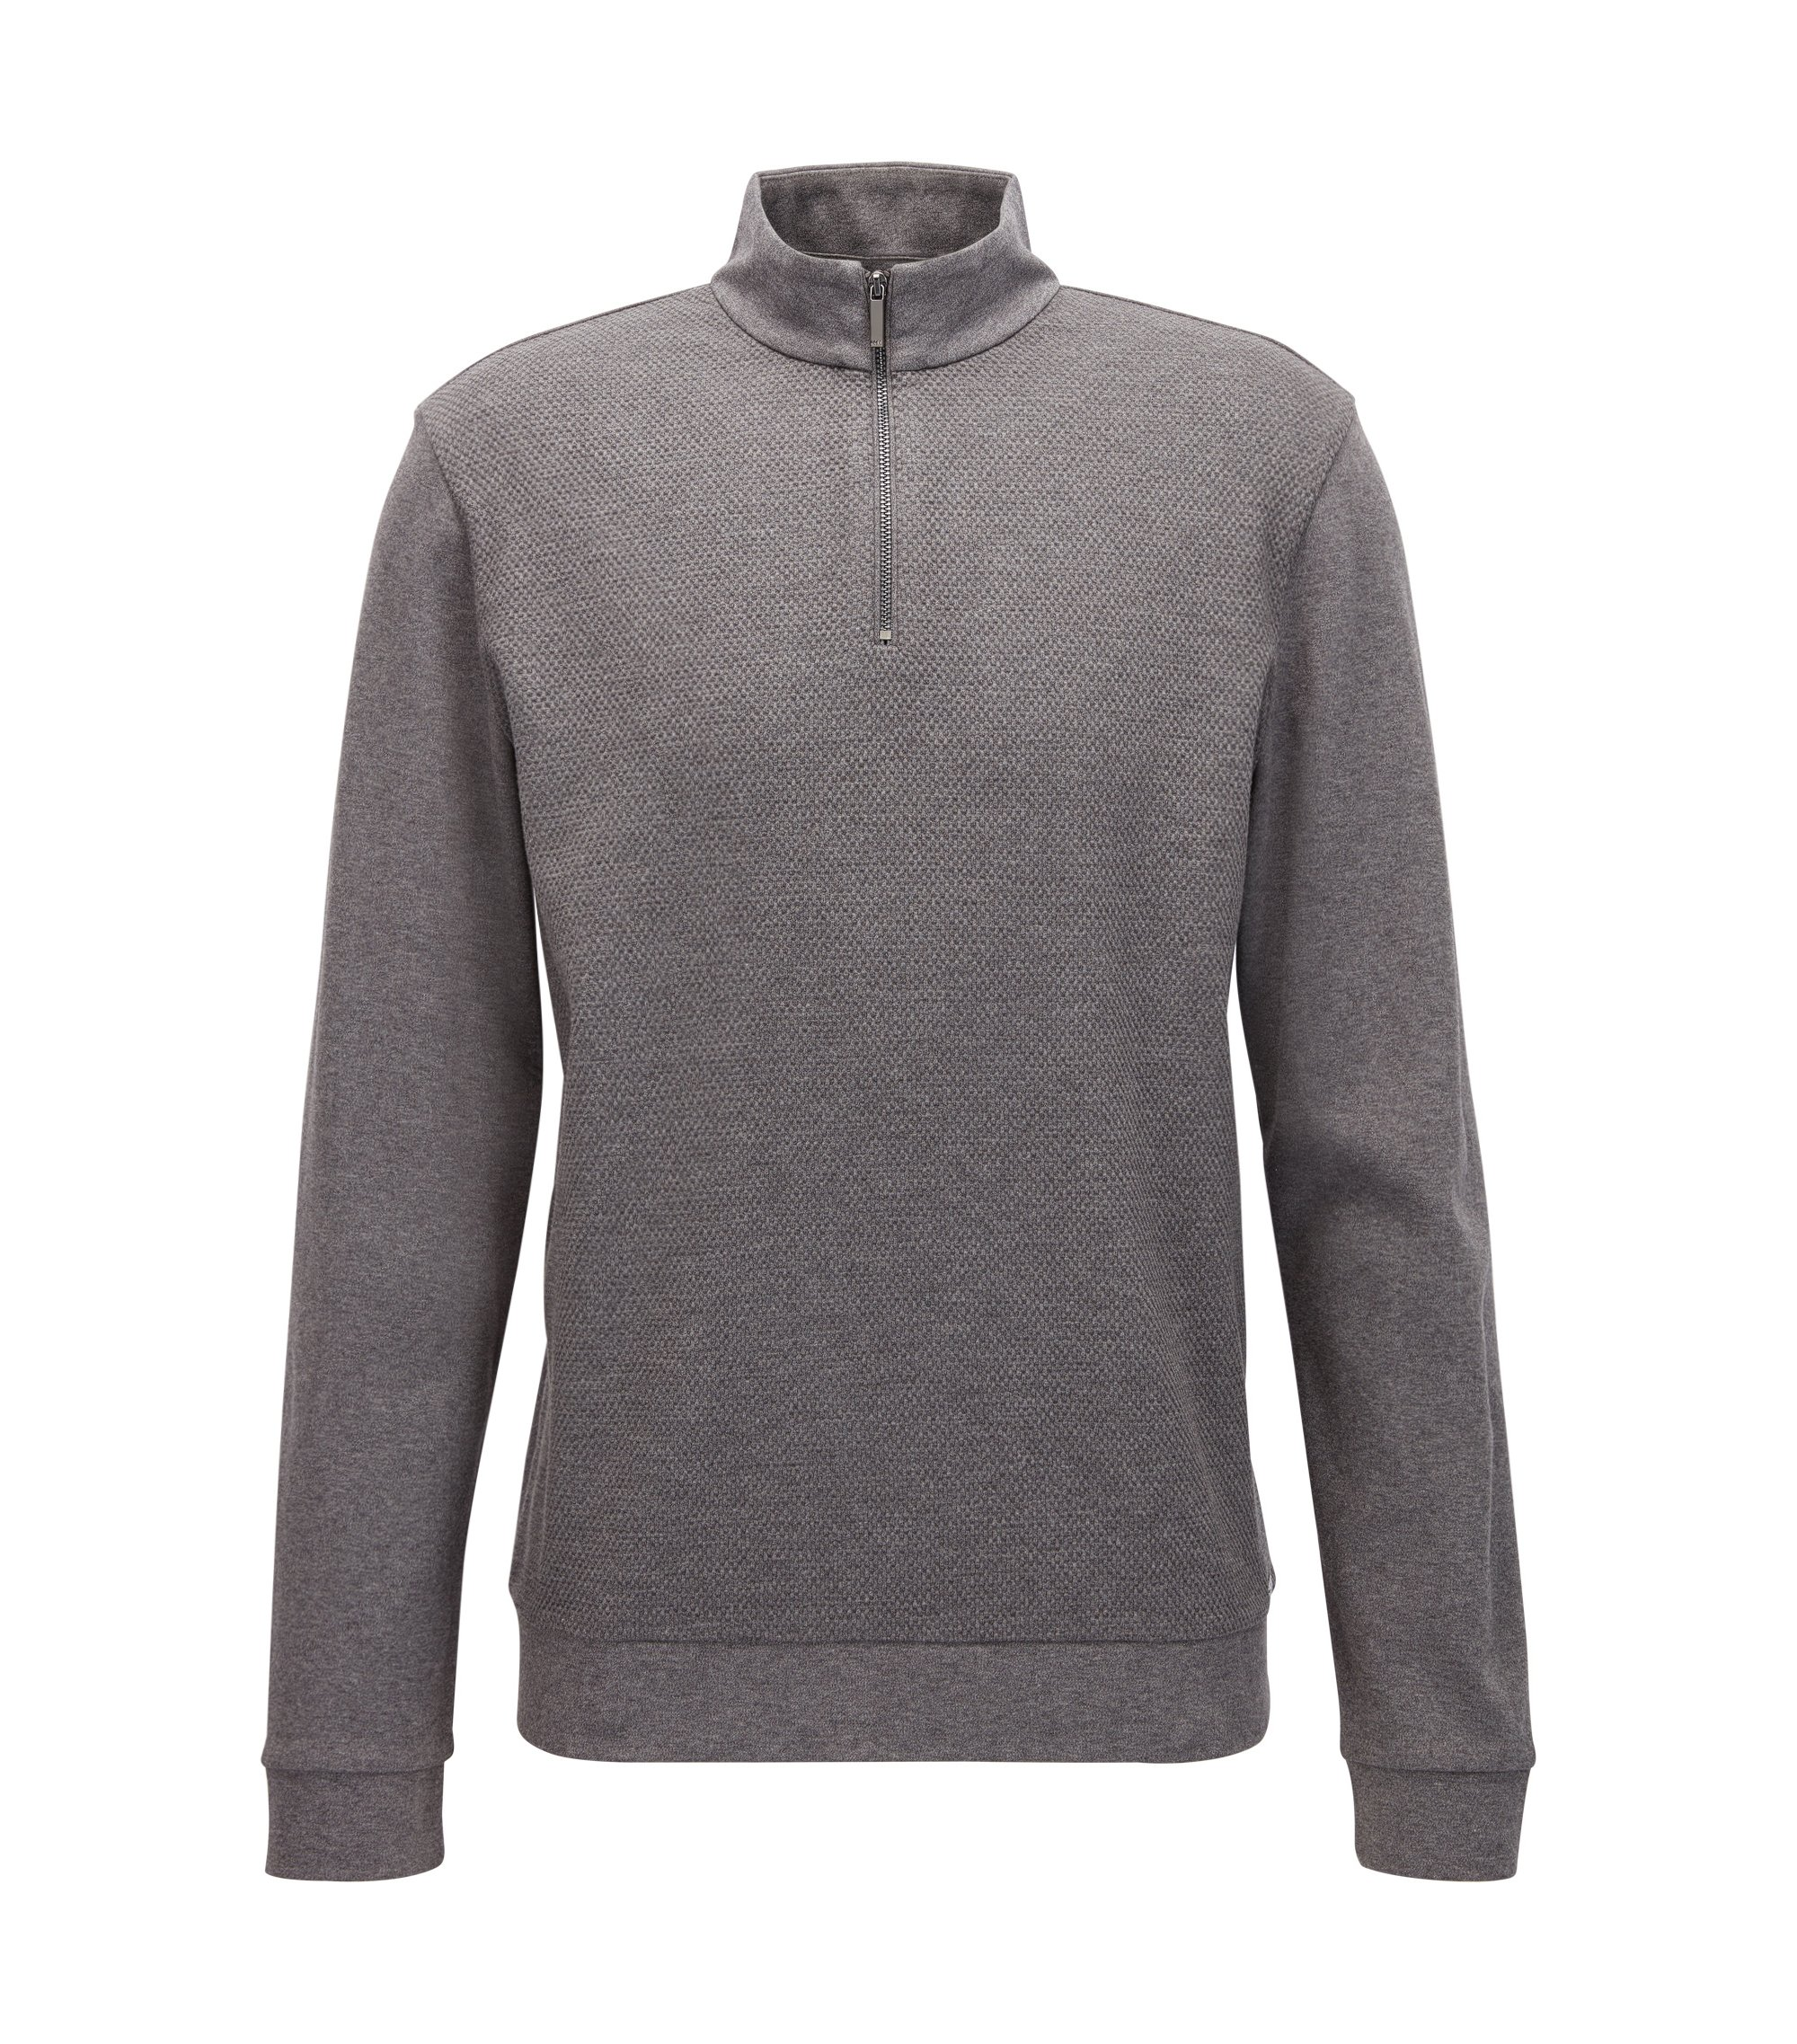 Cotton Birdseye Half-Zip Sweatshirt | Sidney, Grey